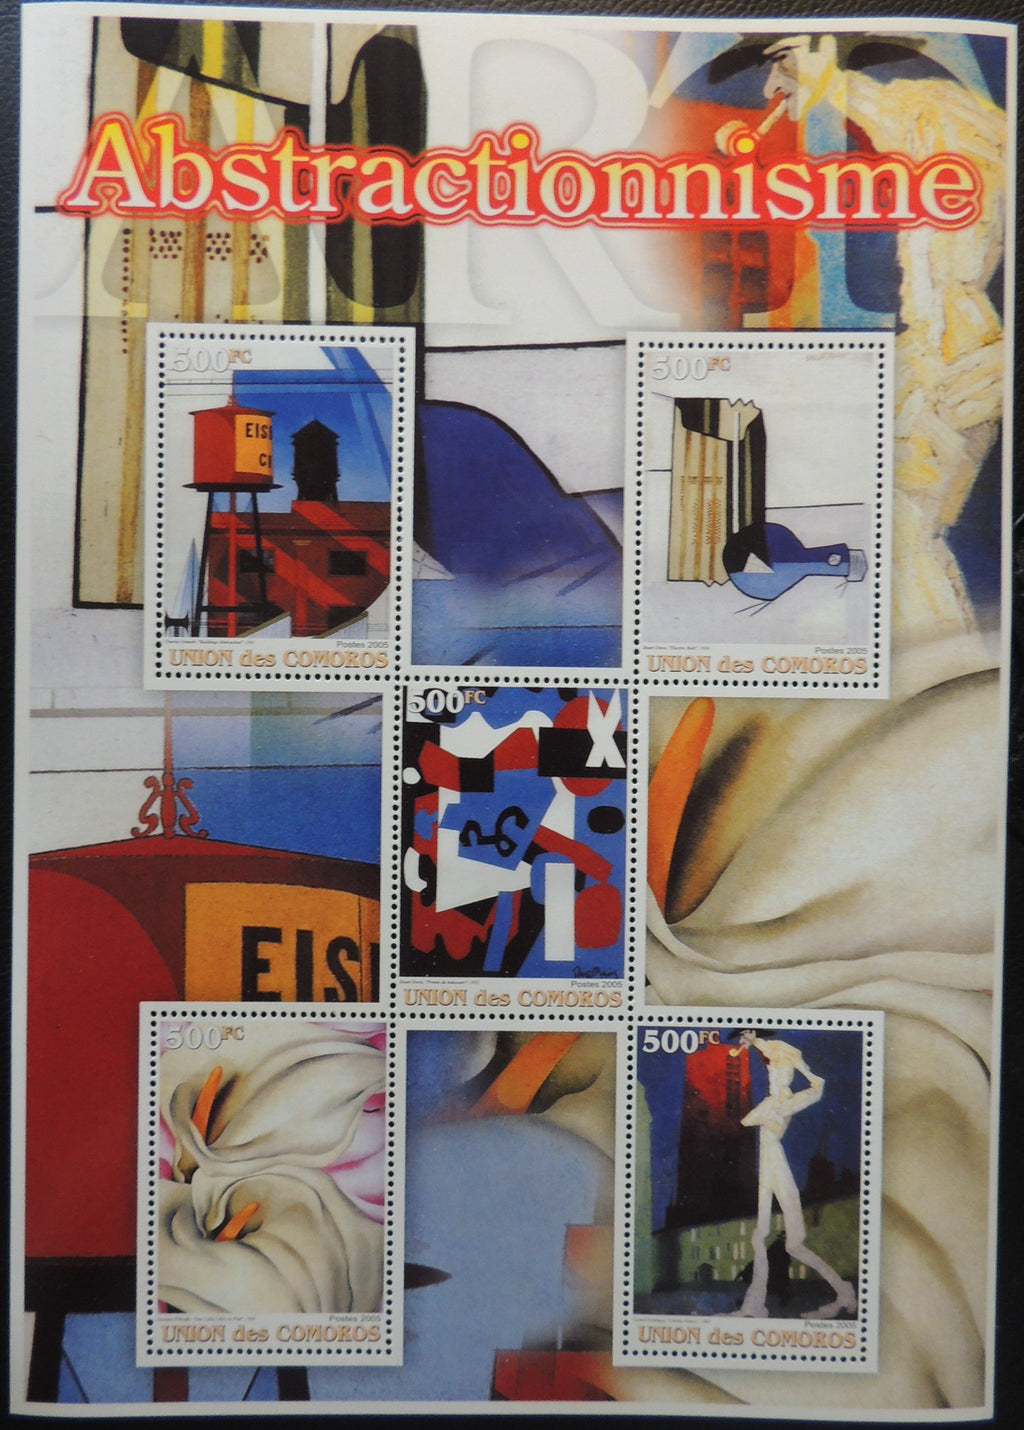 Comoros 2005  abstractionism miniature sheet 5 values